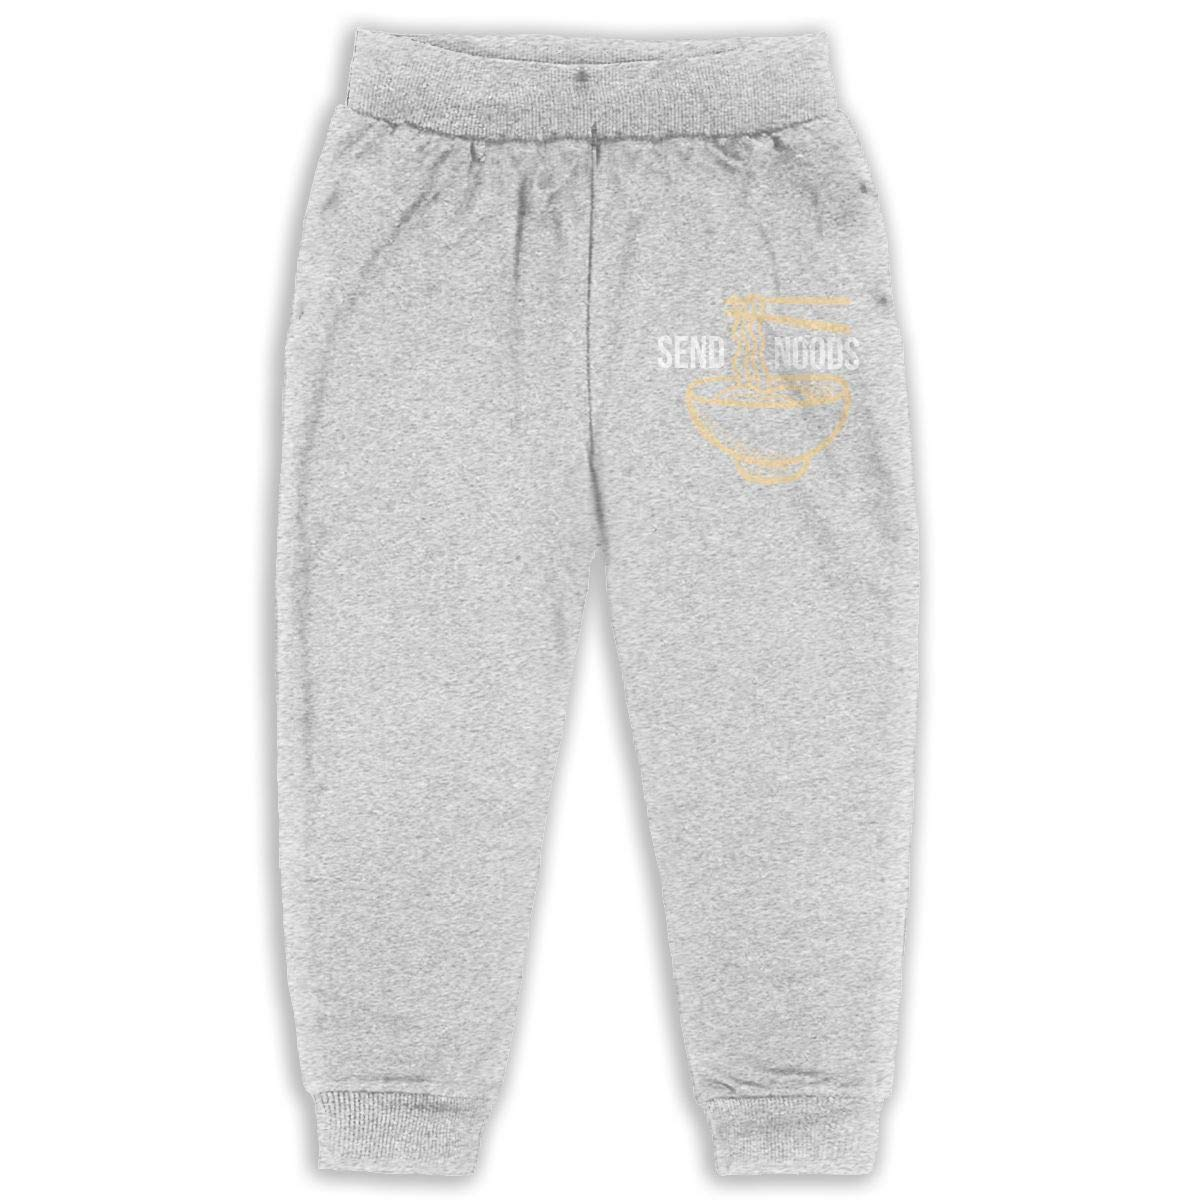 Laoyaotequ Pho Ramen Soup Noodle Kids Cotton Sweatpants,Jogger Long Jersey Sweatpants